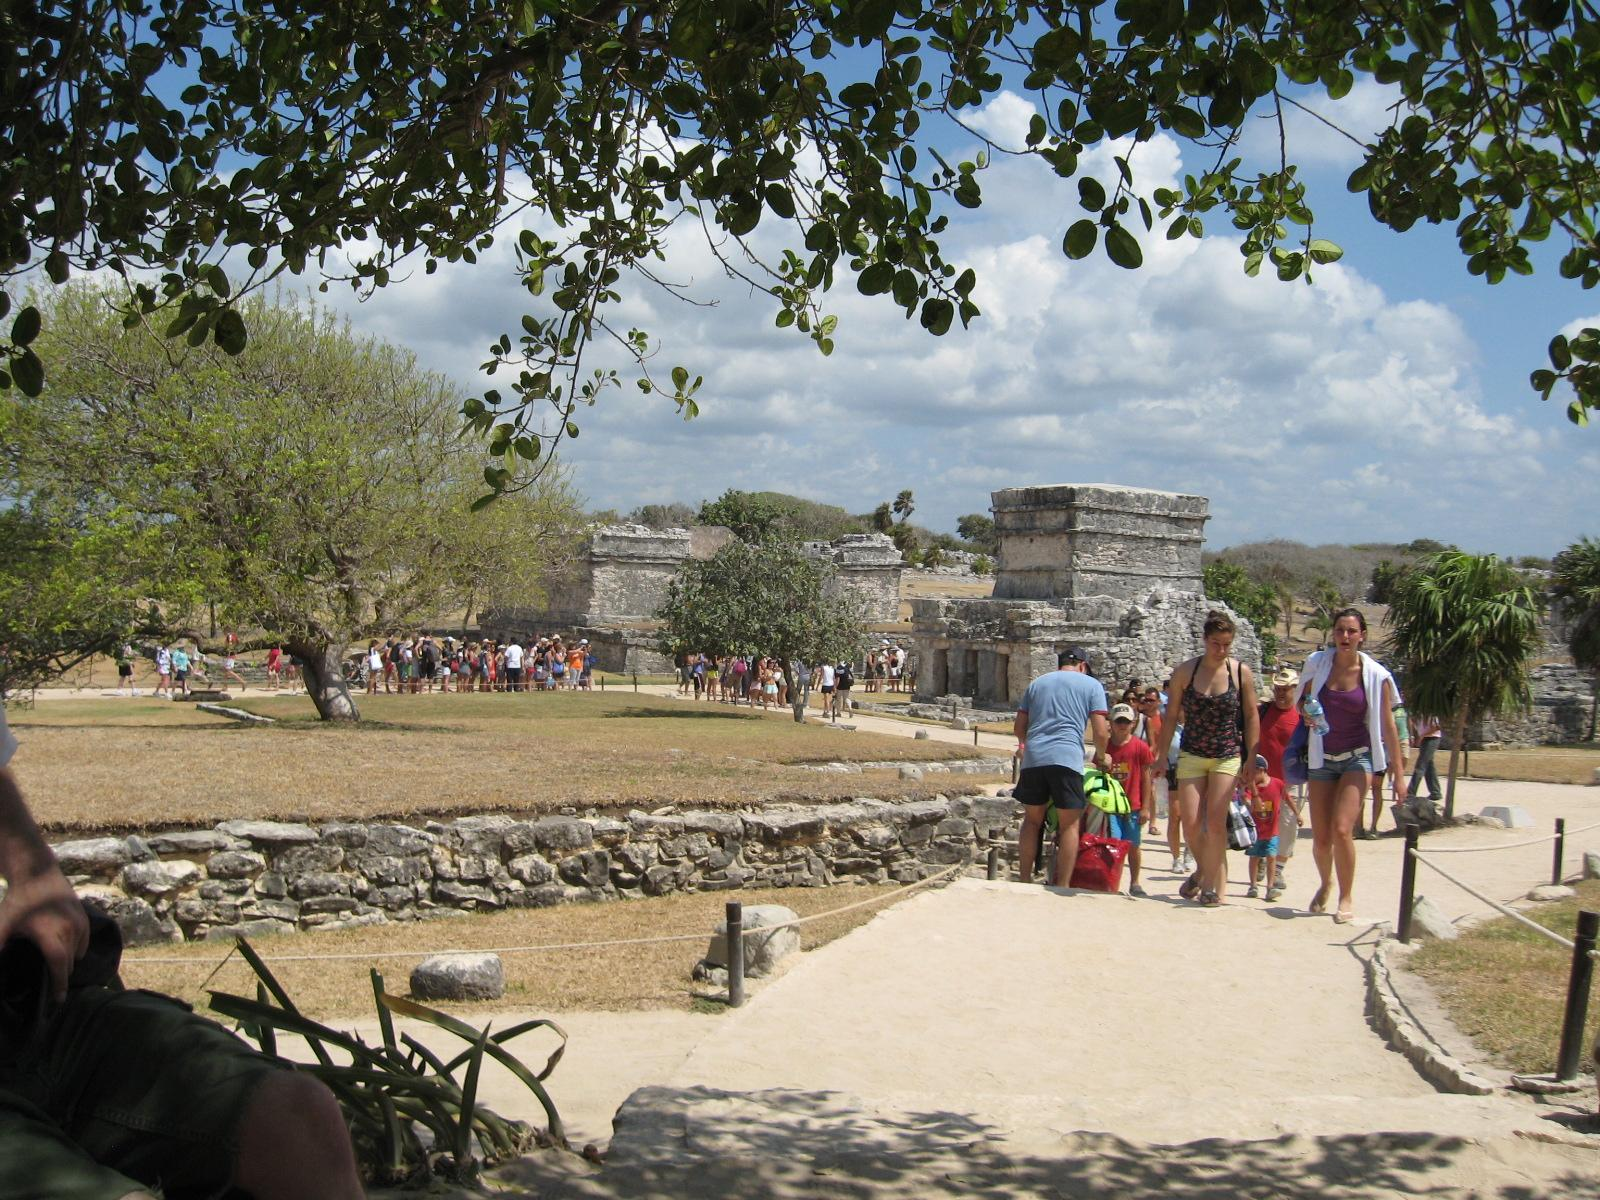 Tourists at Tulum